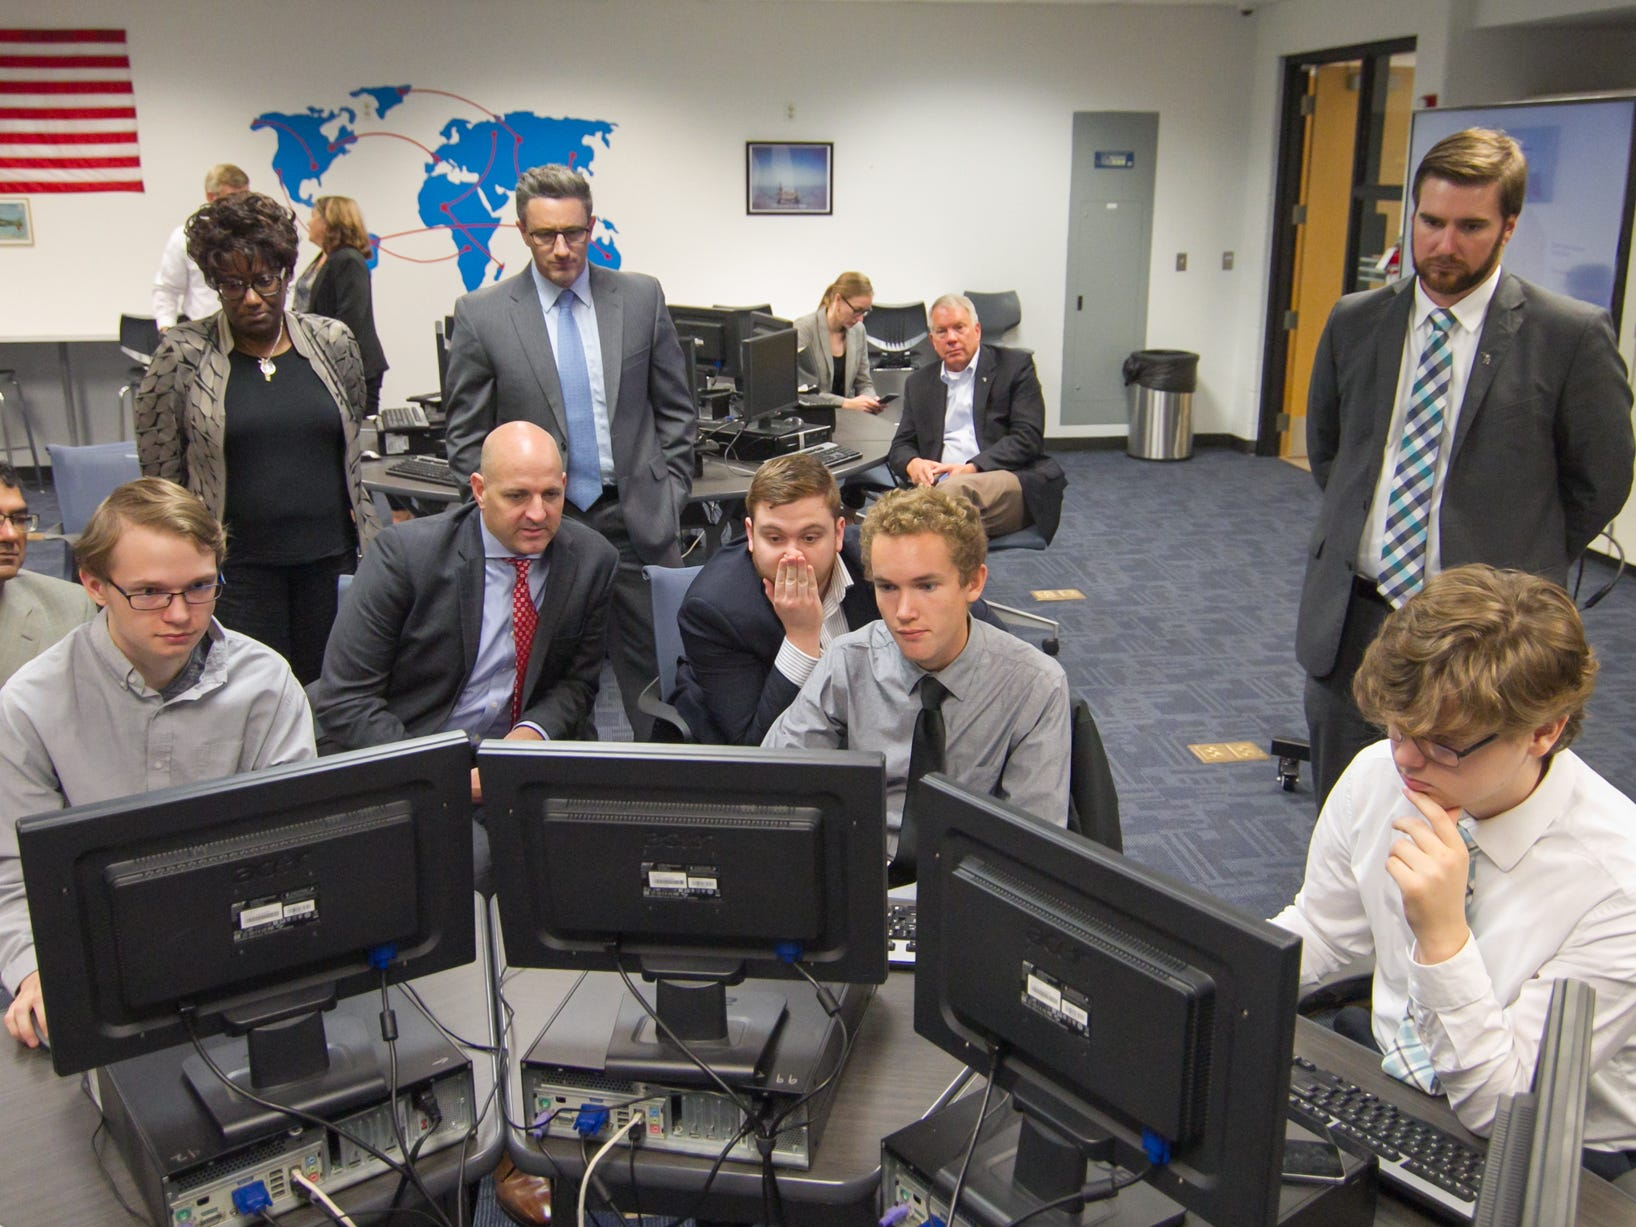 """From left, Pinckney Cyber Training Institute students Noah Warner, Luke Flickema and Aidan Ozias, all seniors, play """"capture the flag,"""" a cyber security game, Tuesday, Oct. 9, 2018 as executives from IBM look on."""